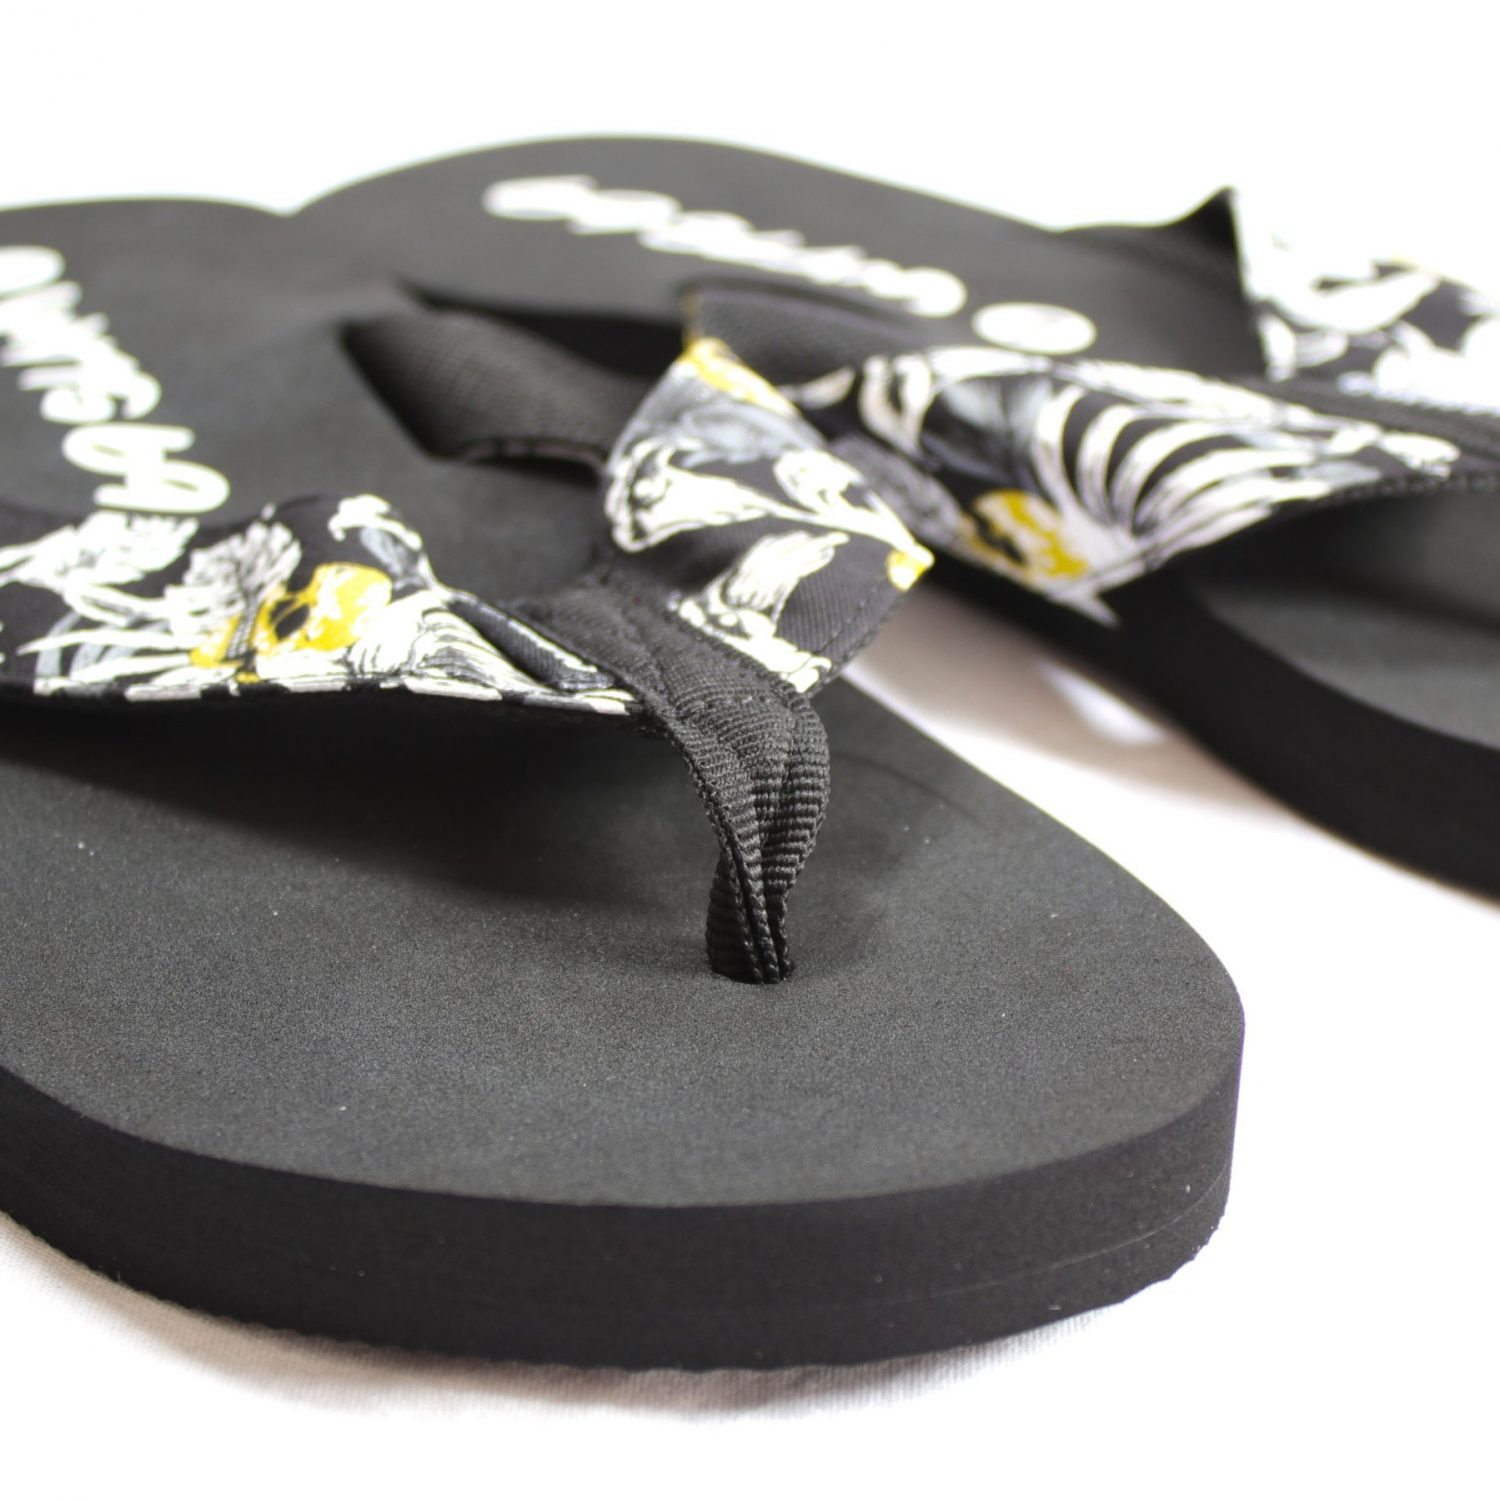 IMG_8384_Flip flops_Strand_Sandalen_Sandals_Surf_Herren_Way back to you